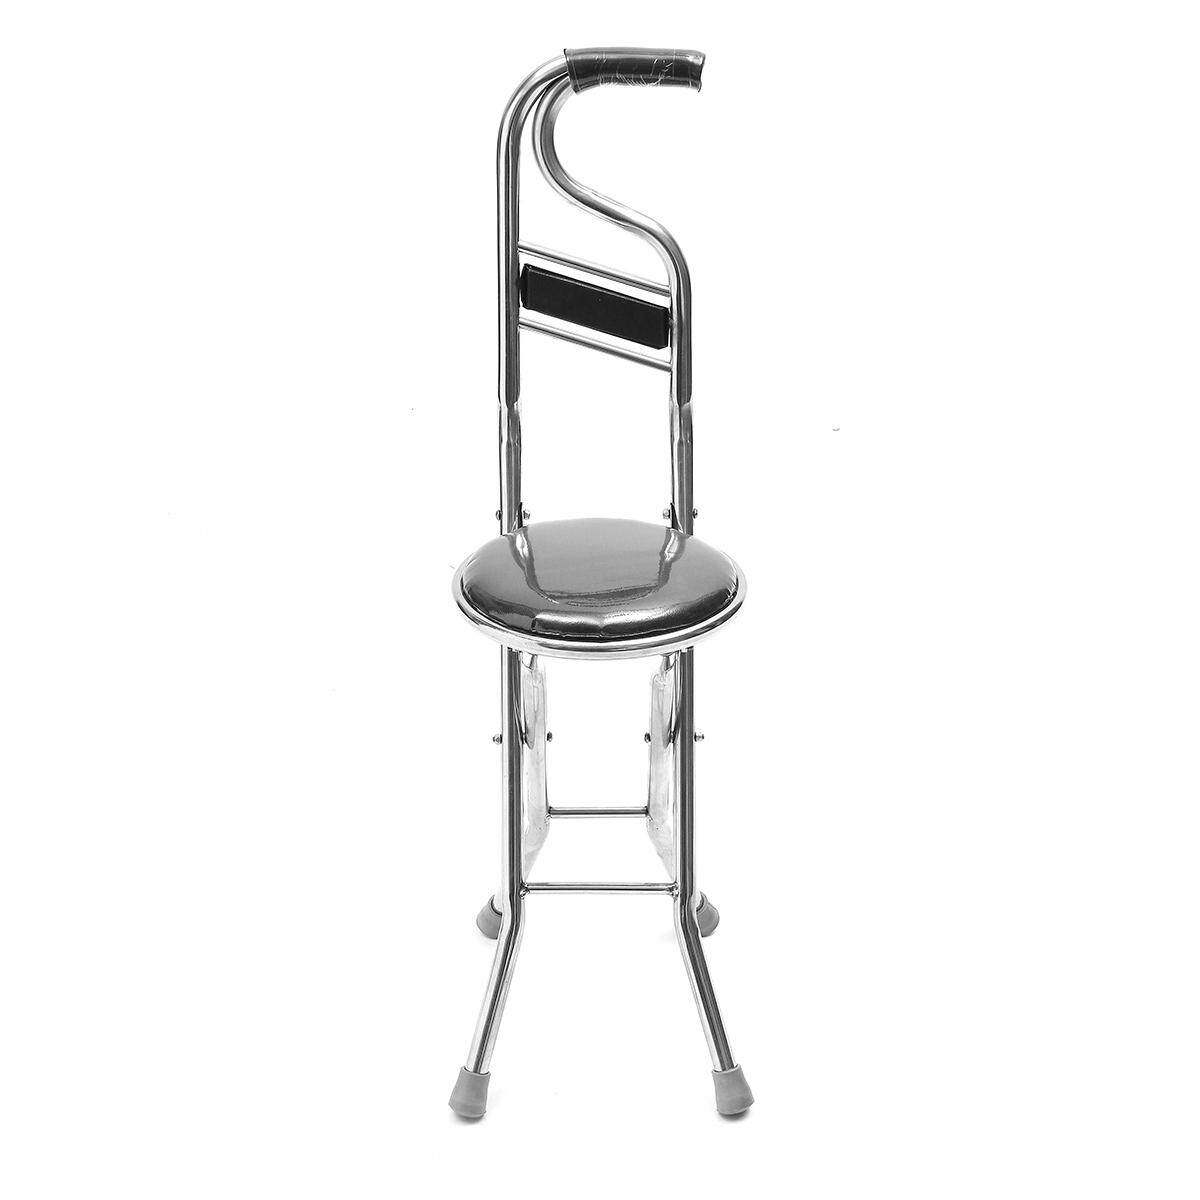 Stainless Steel Portable Folding Walking Stick Chair Seat Stool Travel Cane  Black By Glimmer.